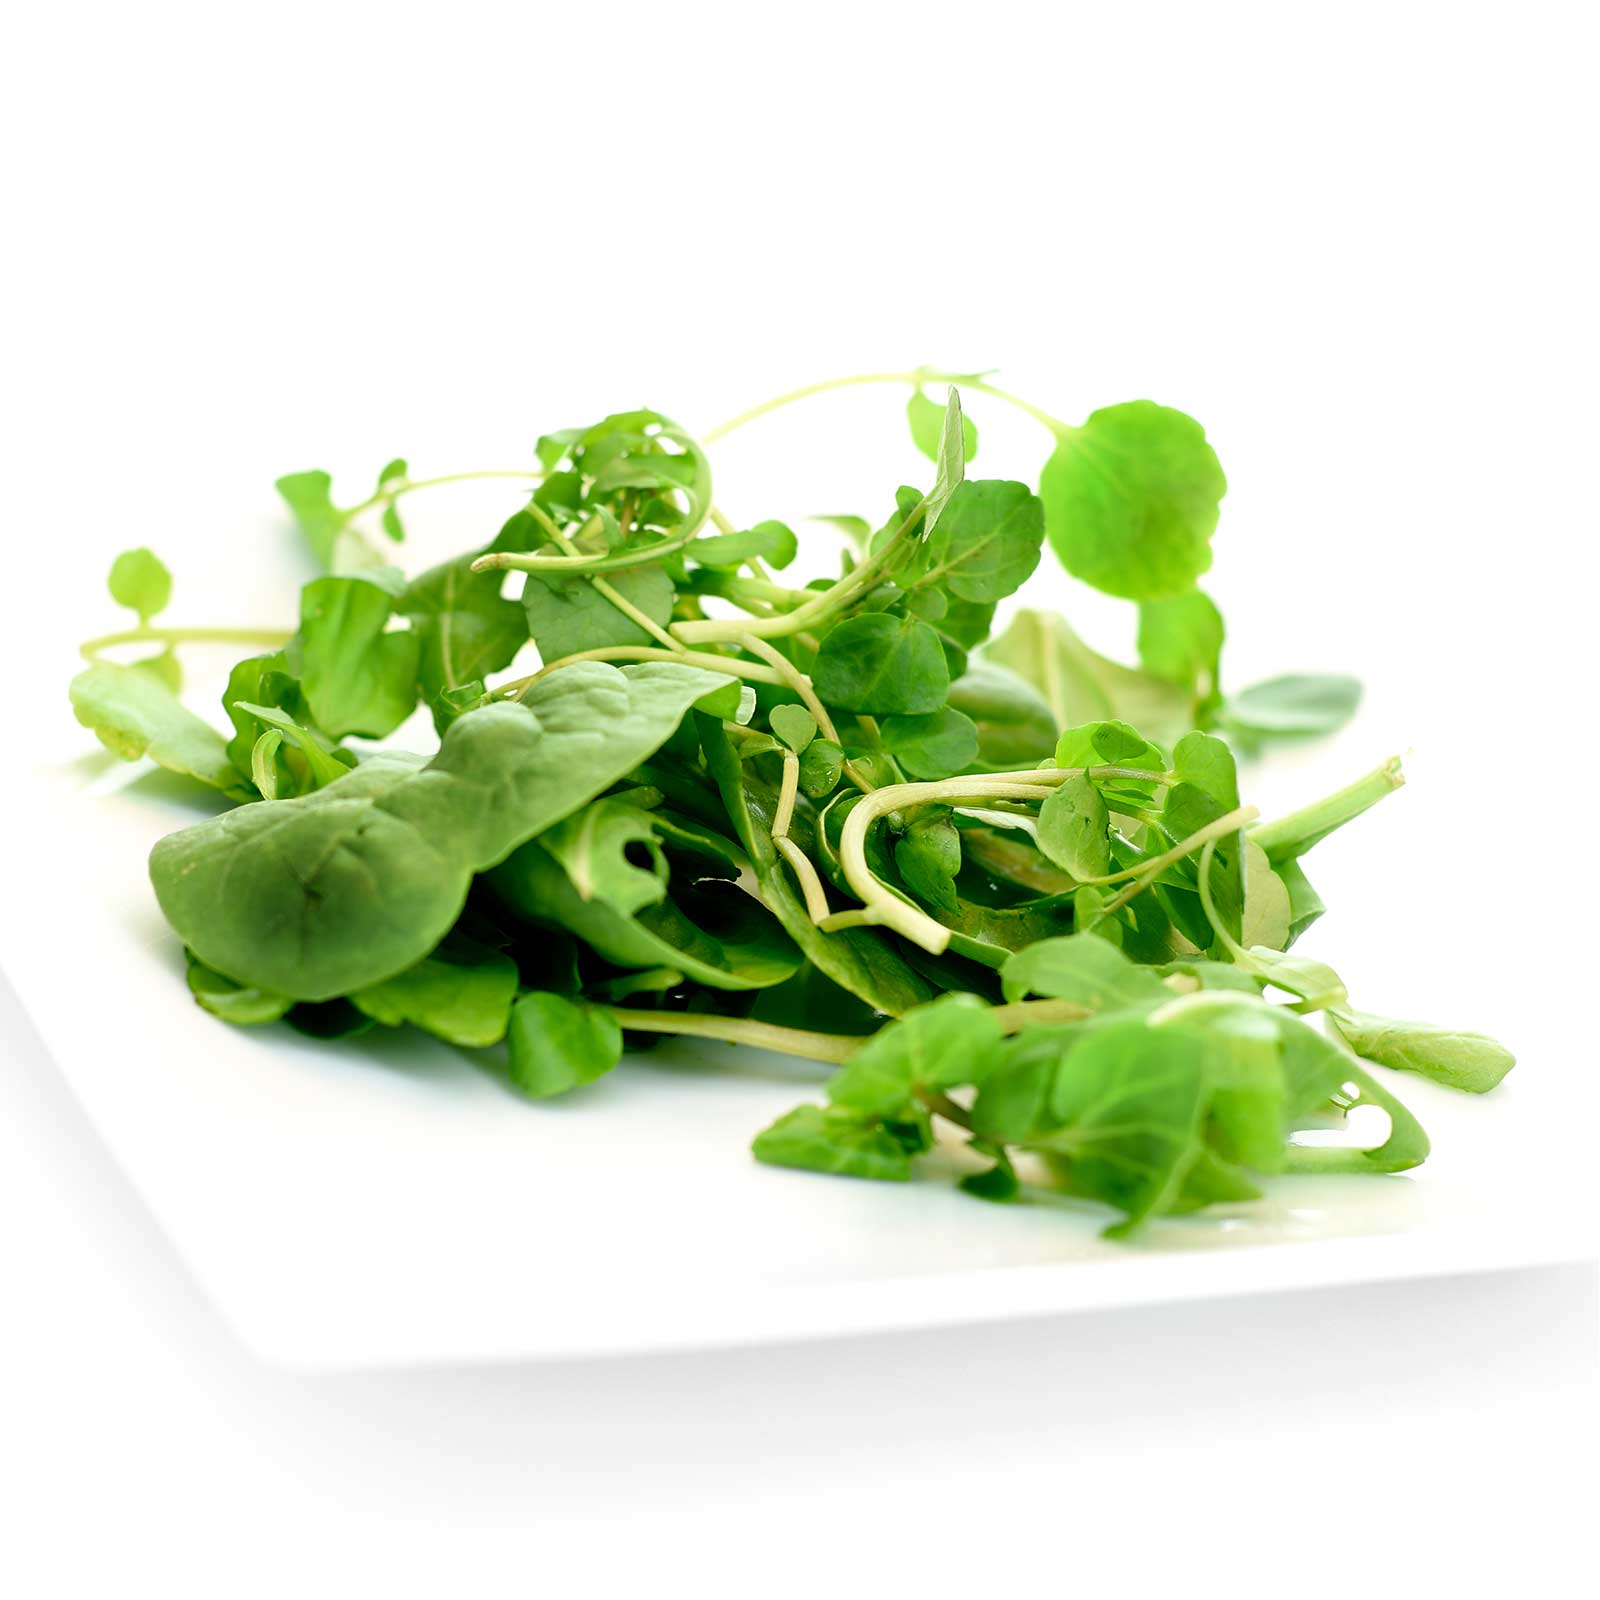 Upland Cress Garden Seeds - 4 Oz - Non-GMO, Heirloom Vegetable Gardening & Microgreens Seeds